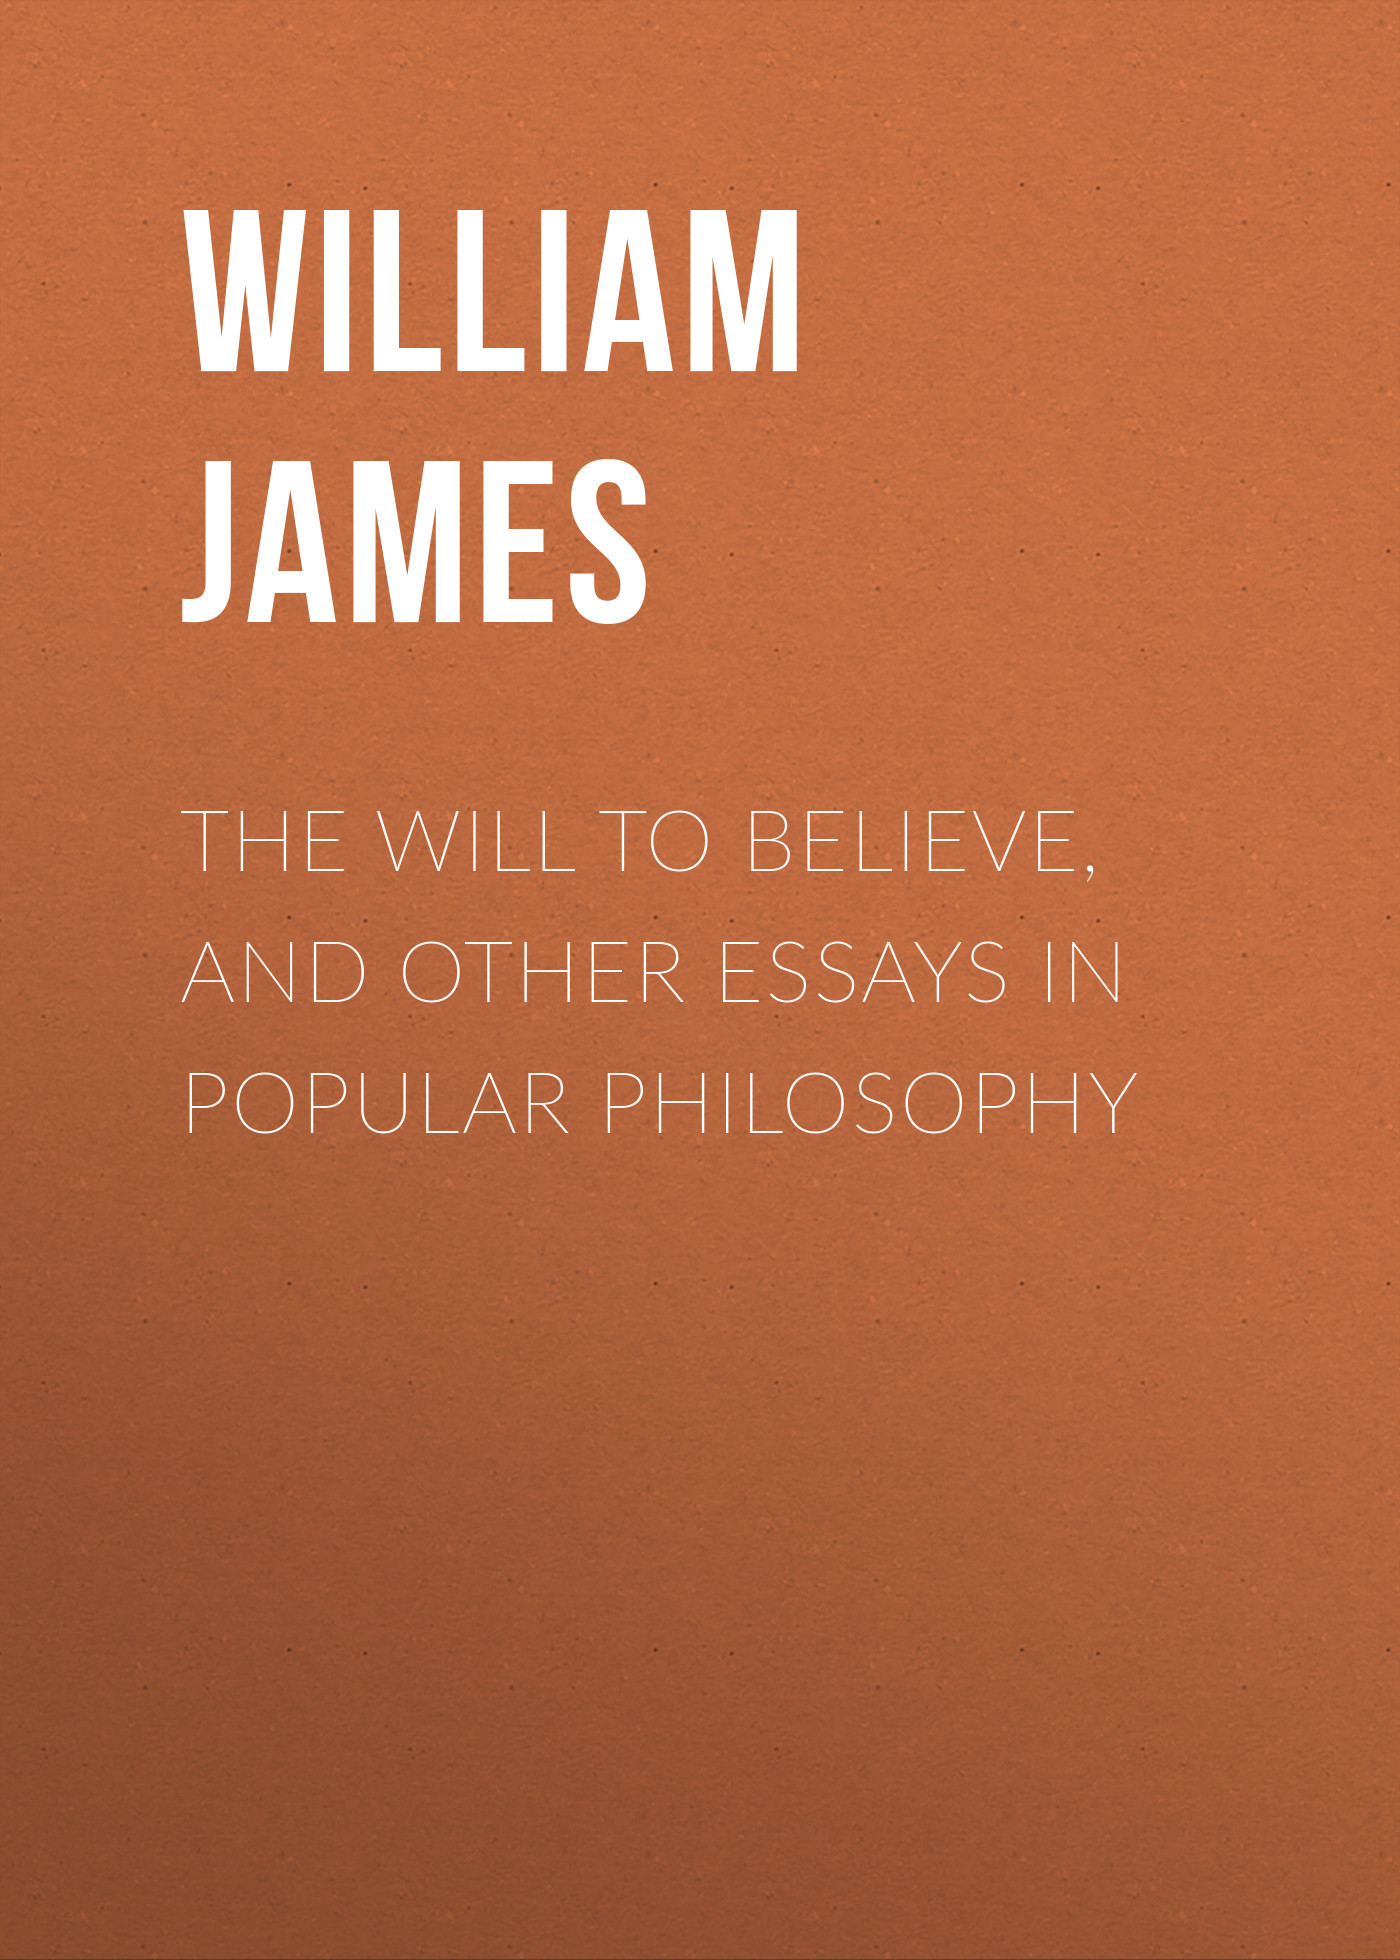 William James The Will to Believe, and Other Essays in Popular Philosophy